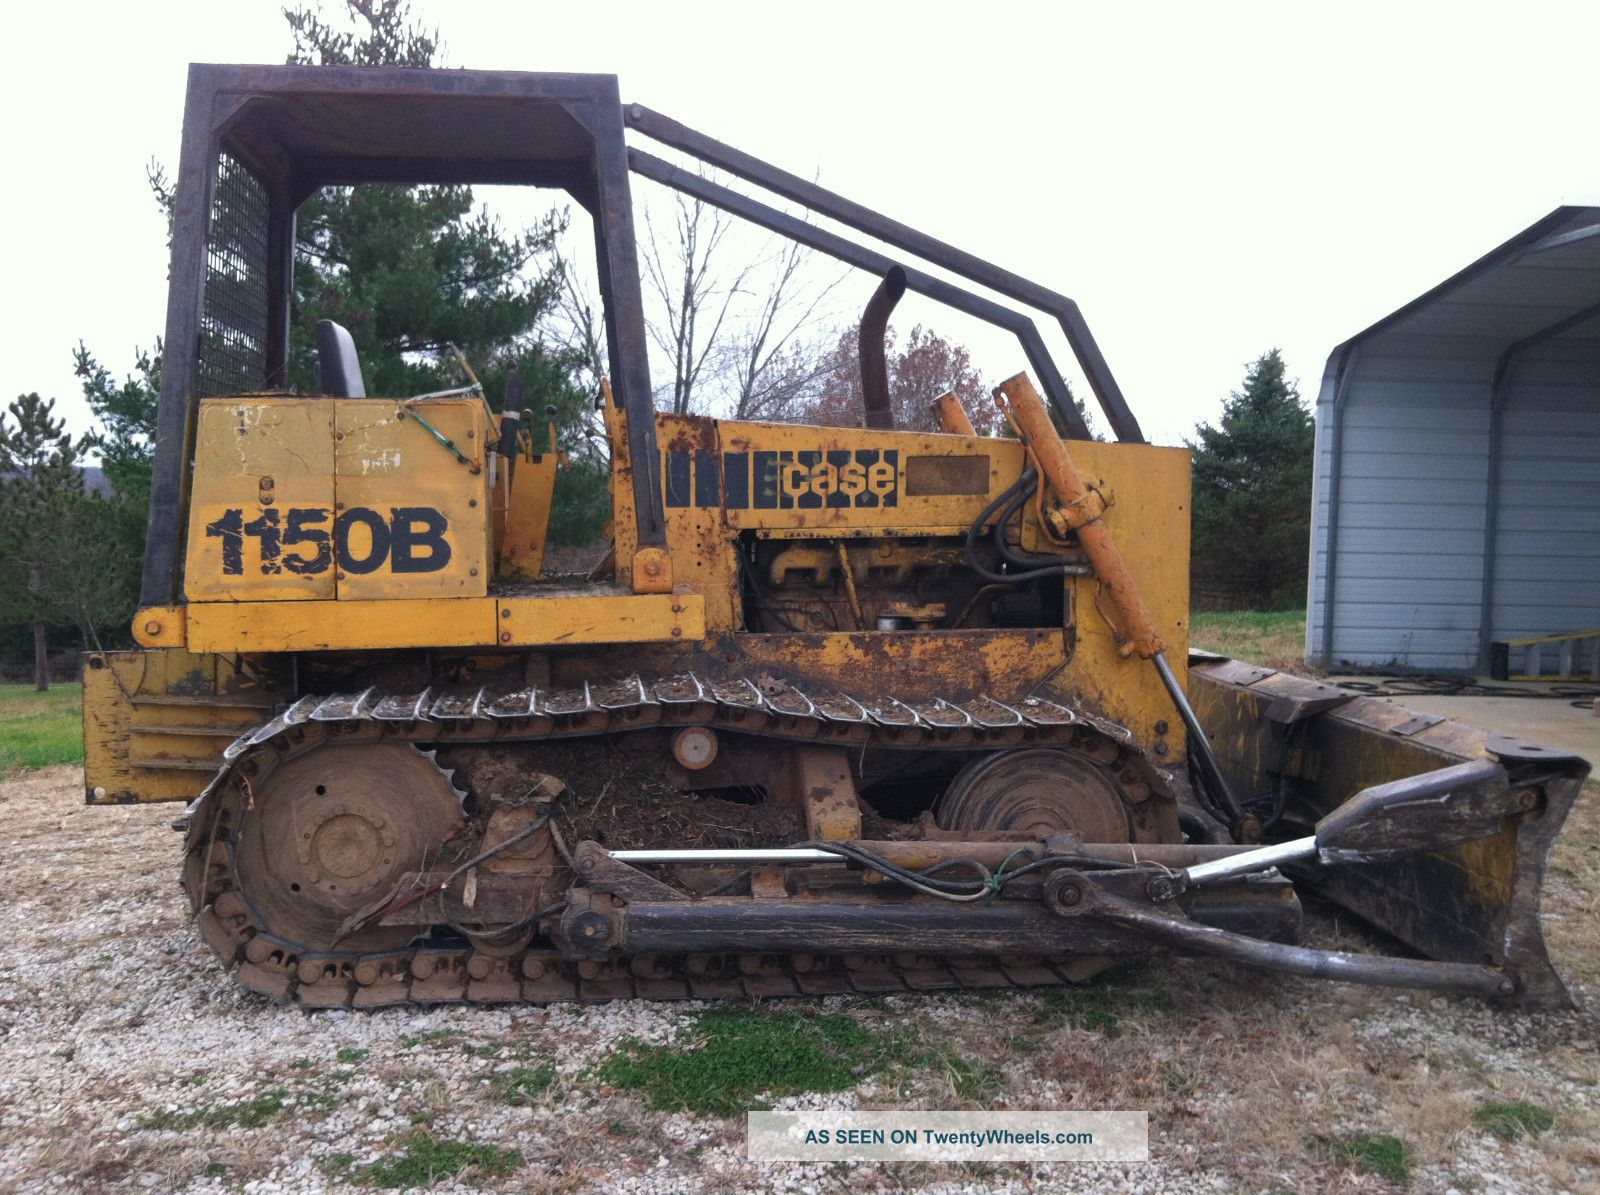 case dozier Advancequip has the complete range of case diggers for sale, along with bulldozers, graders and wheel loaders we offer finance options for new and used excavators.